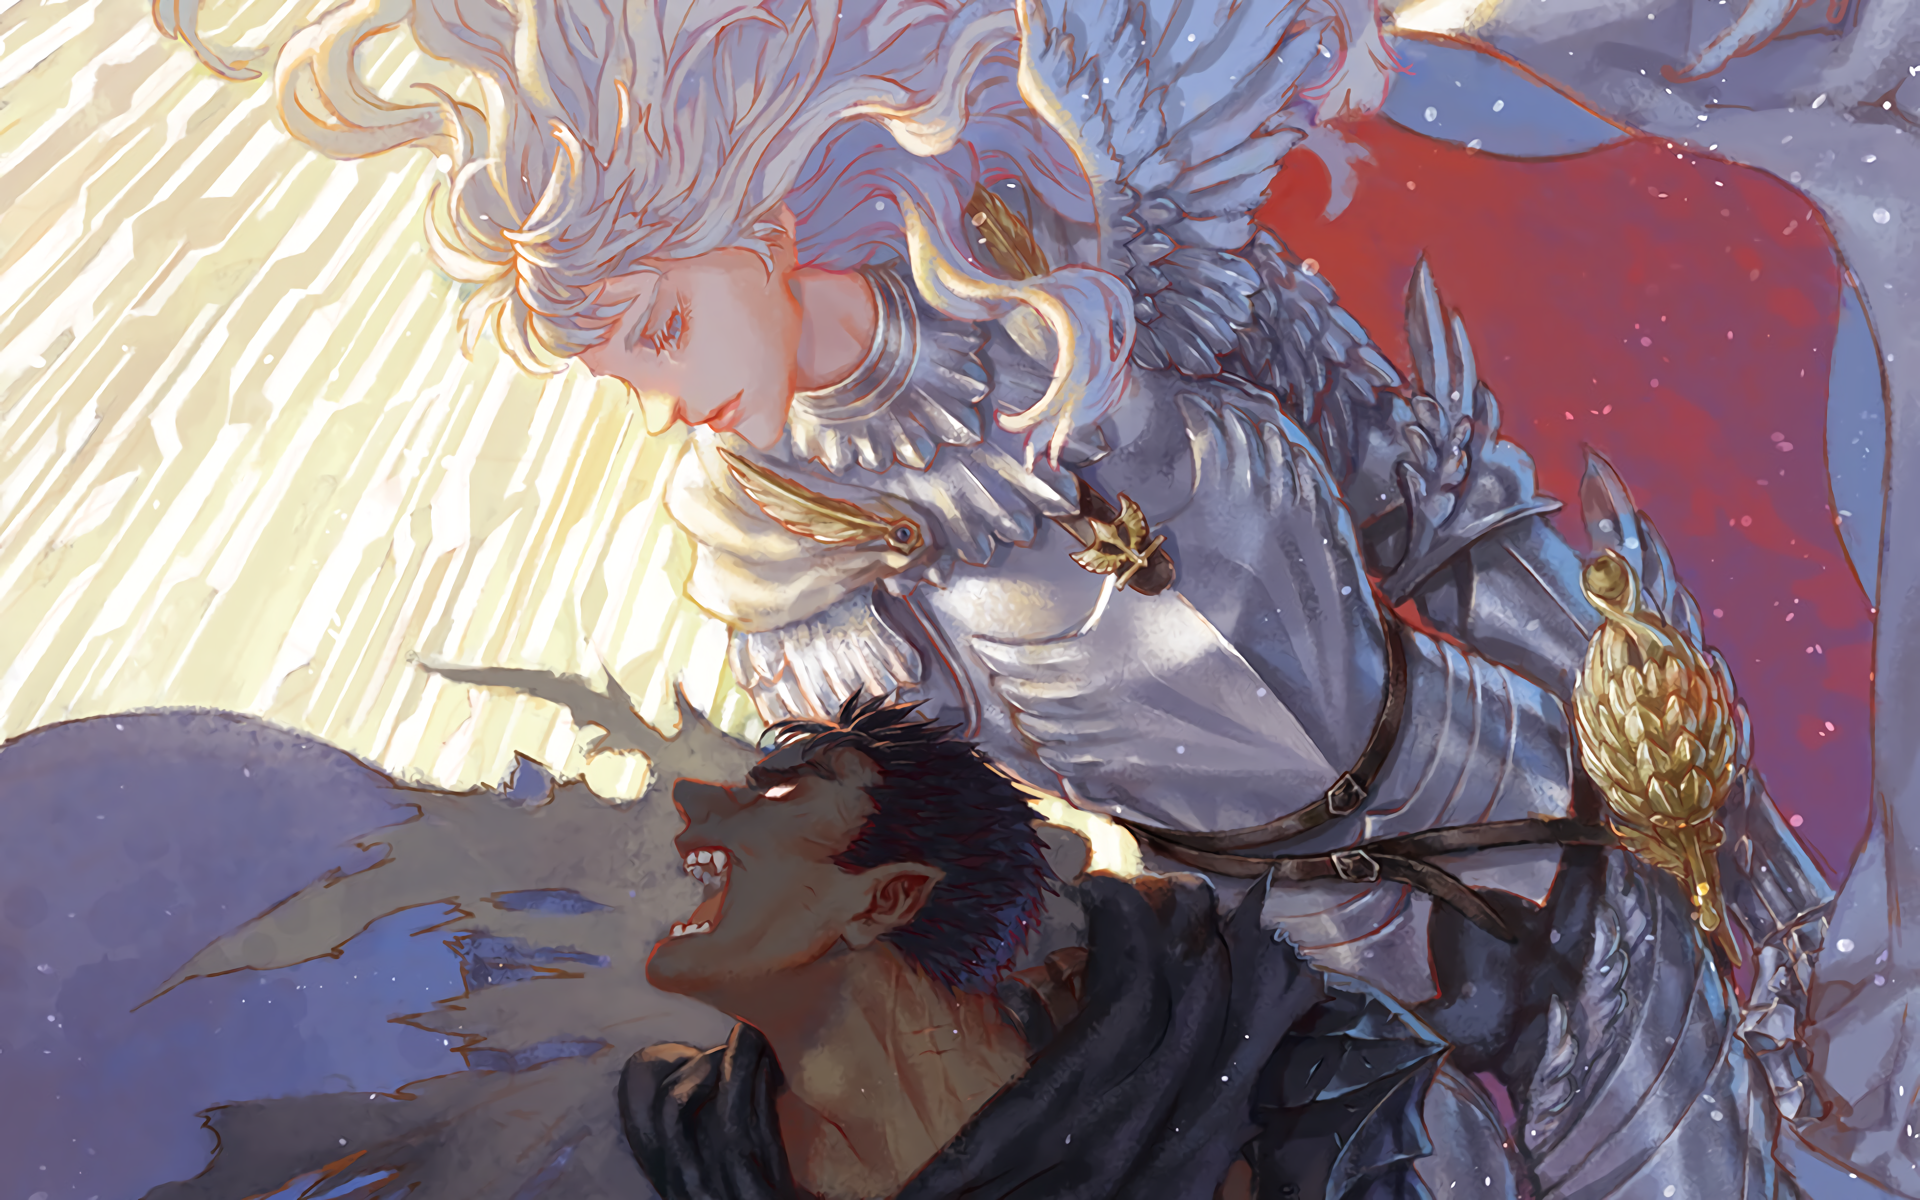 thumb 1920 821395png 19201200 Anime Guts and griffith 1920x1200